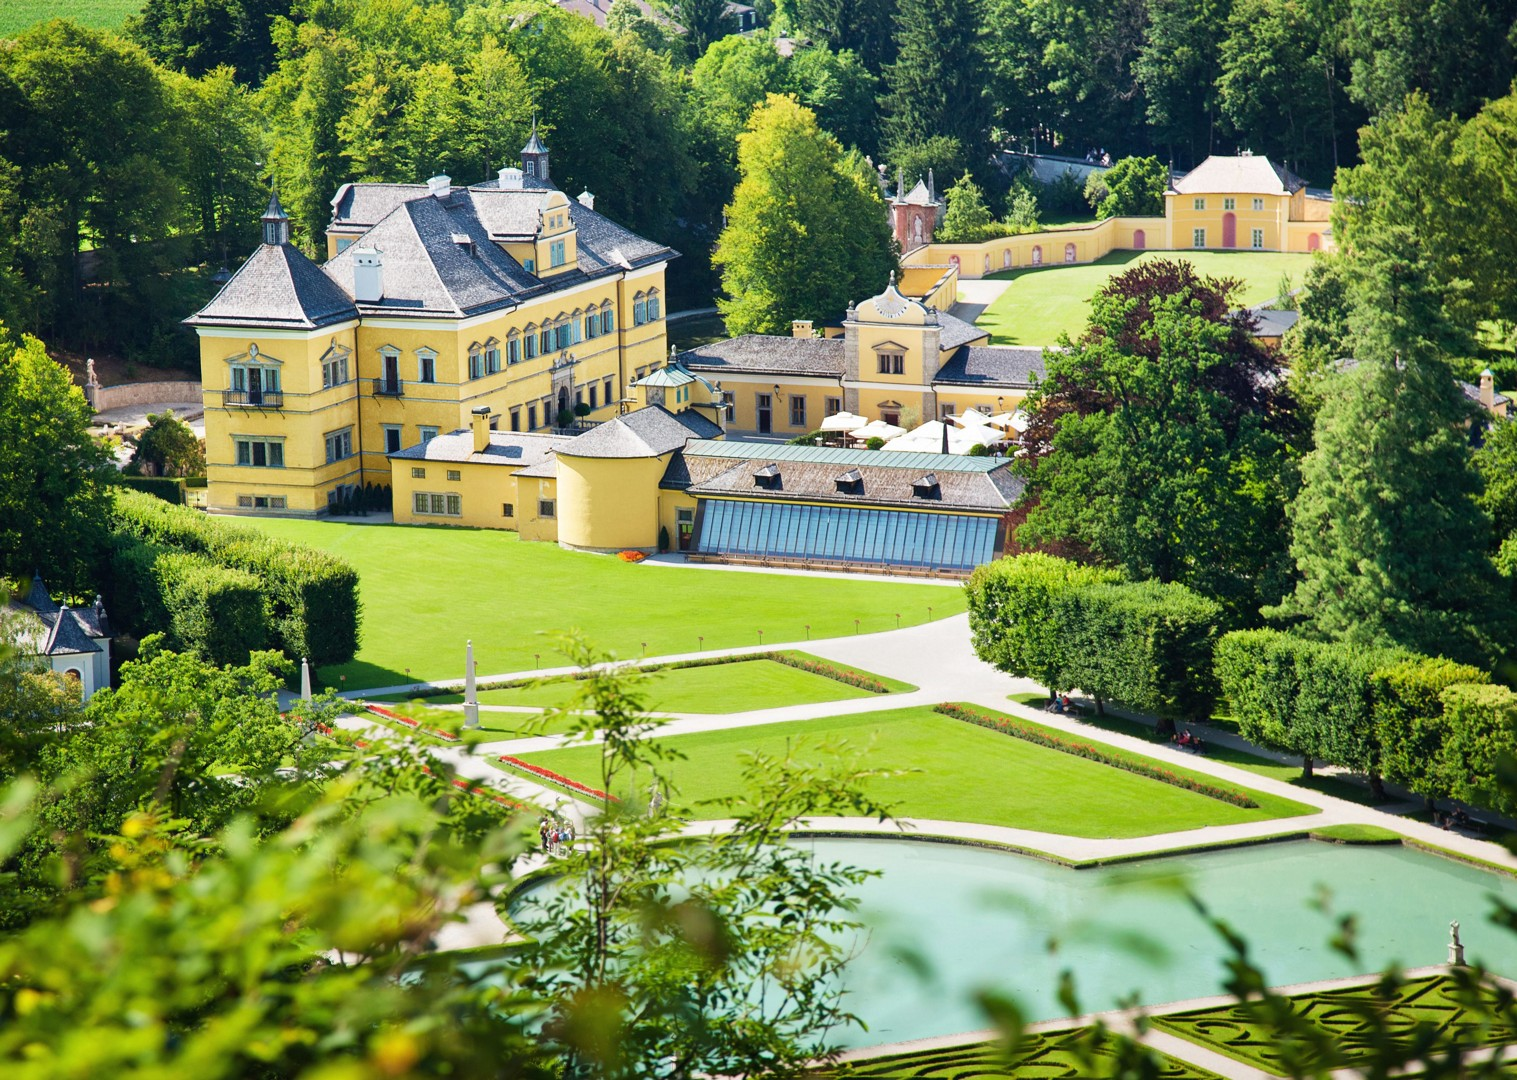 hellbrunn-palace-austrian-biking-tour-family-trip.jpg - Austria - Ten Lakes Tour - Self-Guided Family Cycling Holiday - Family Cycling